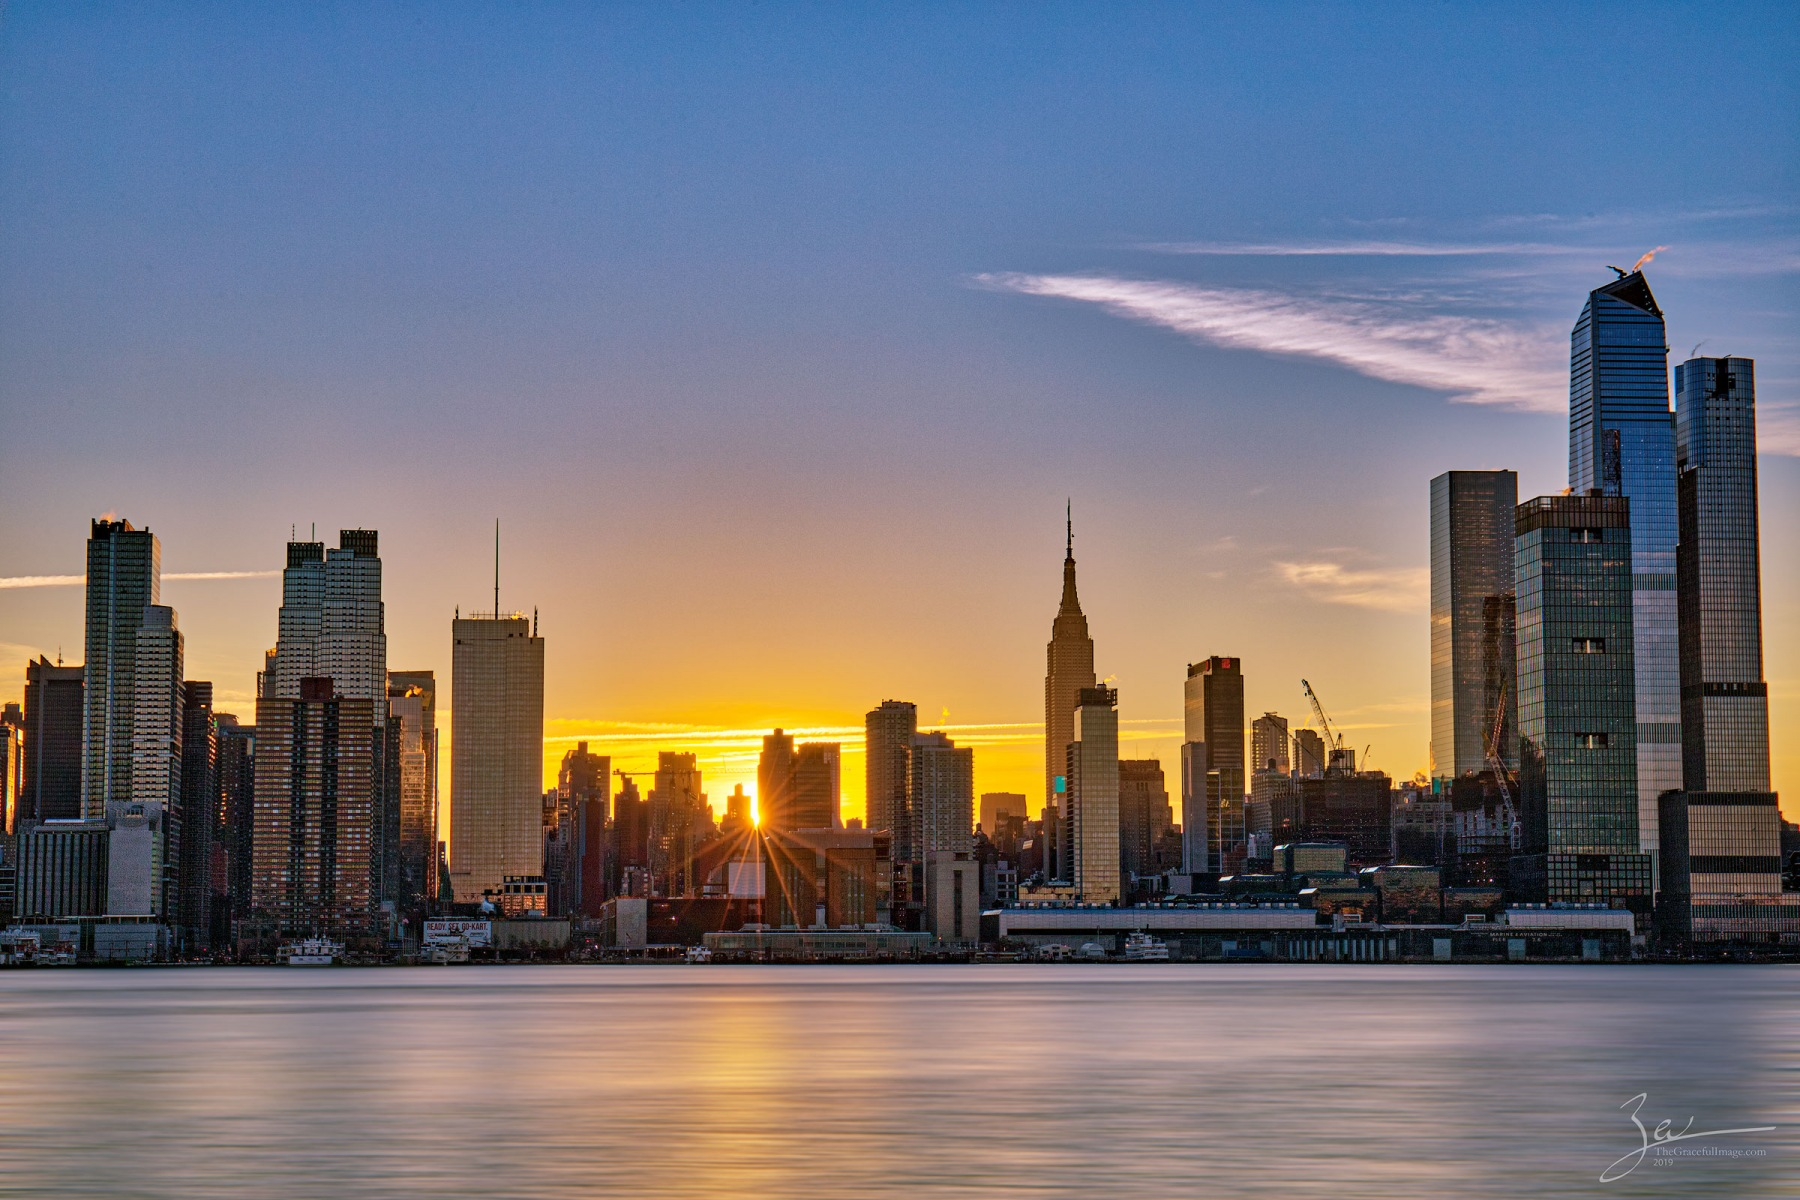 20191225_ManhattanSunrise-298-300-wm